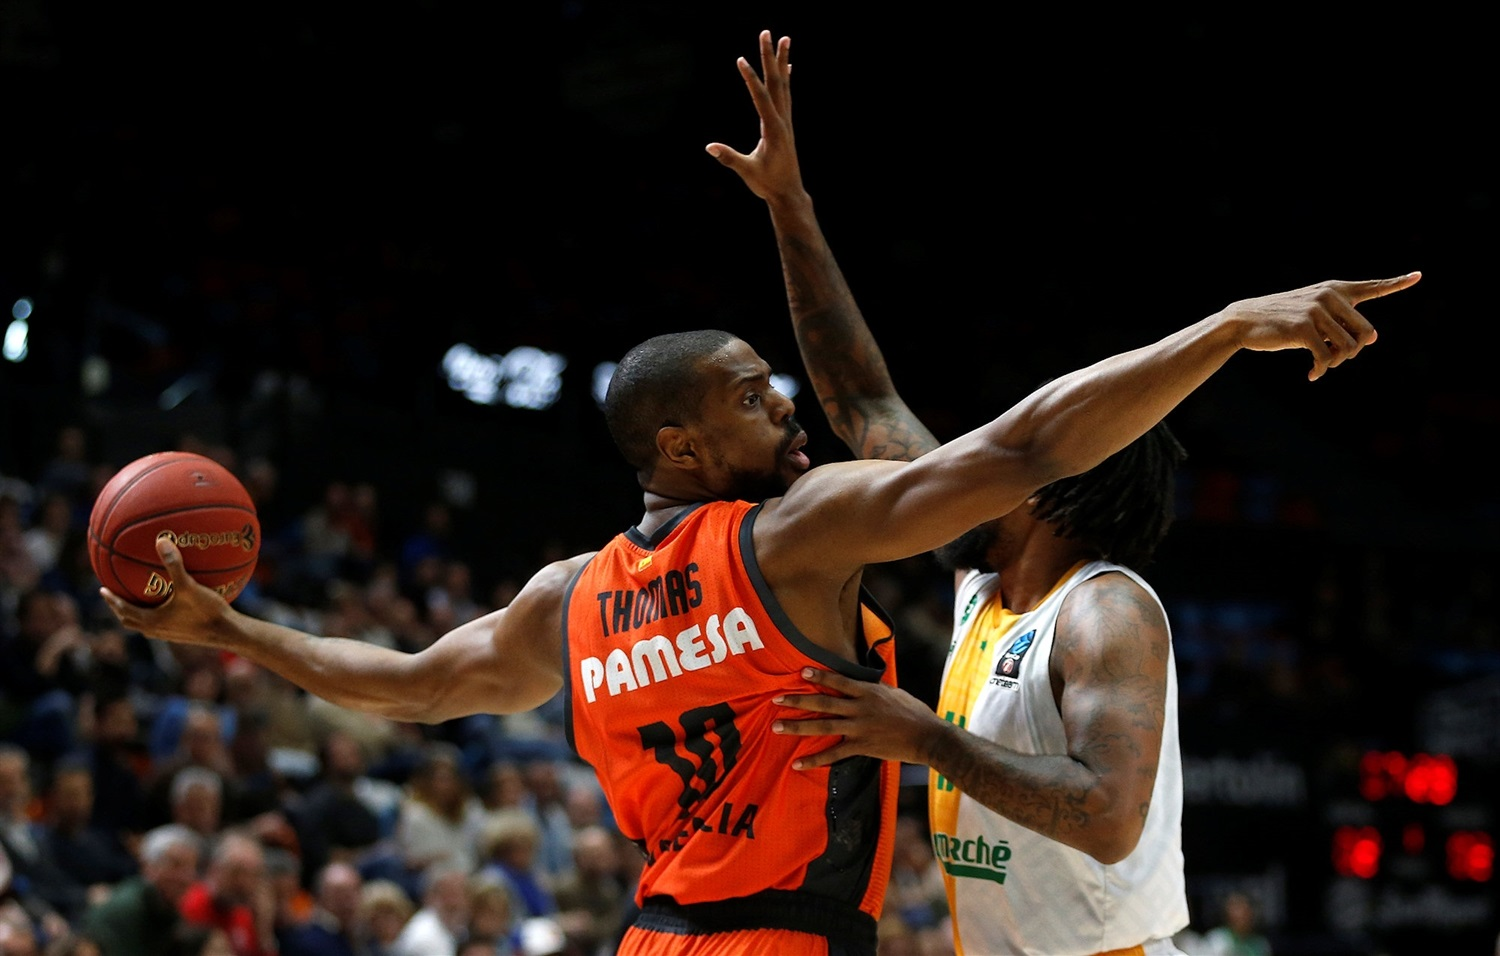 Will Thomas - Valencia Basket (photo Valencia) - EC18